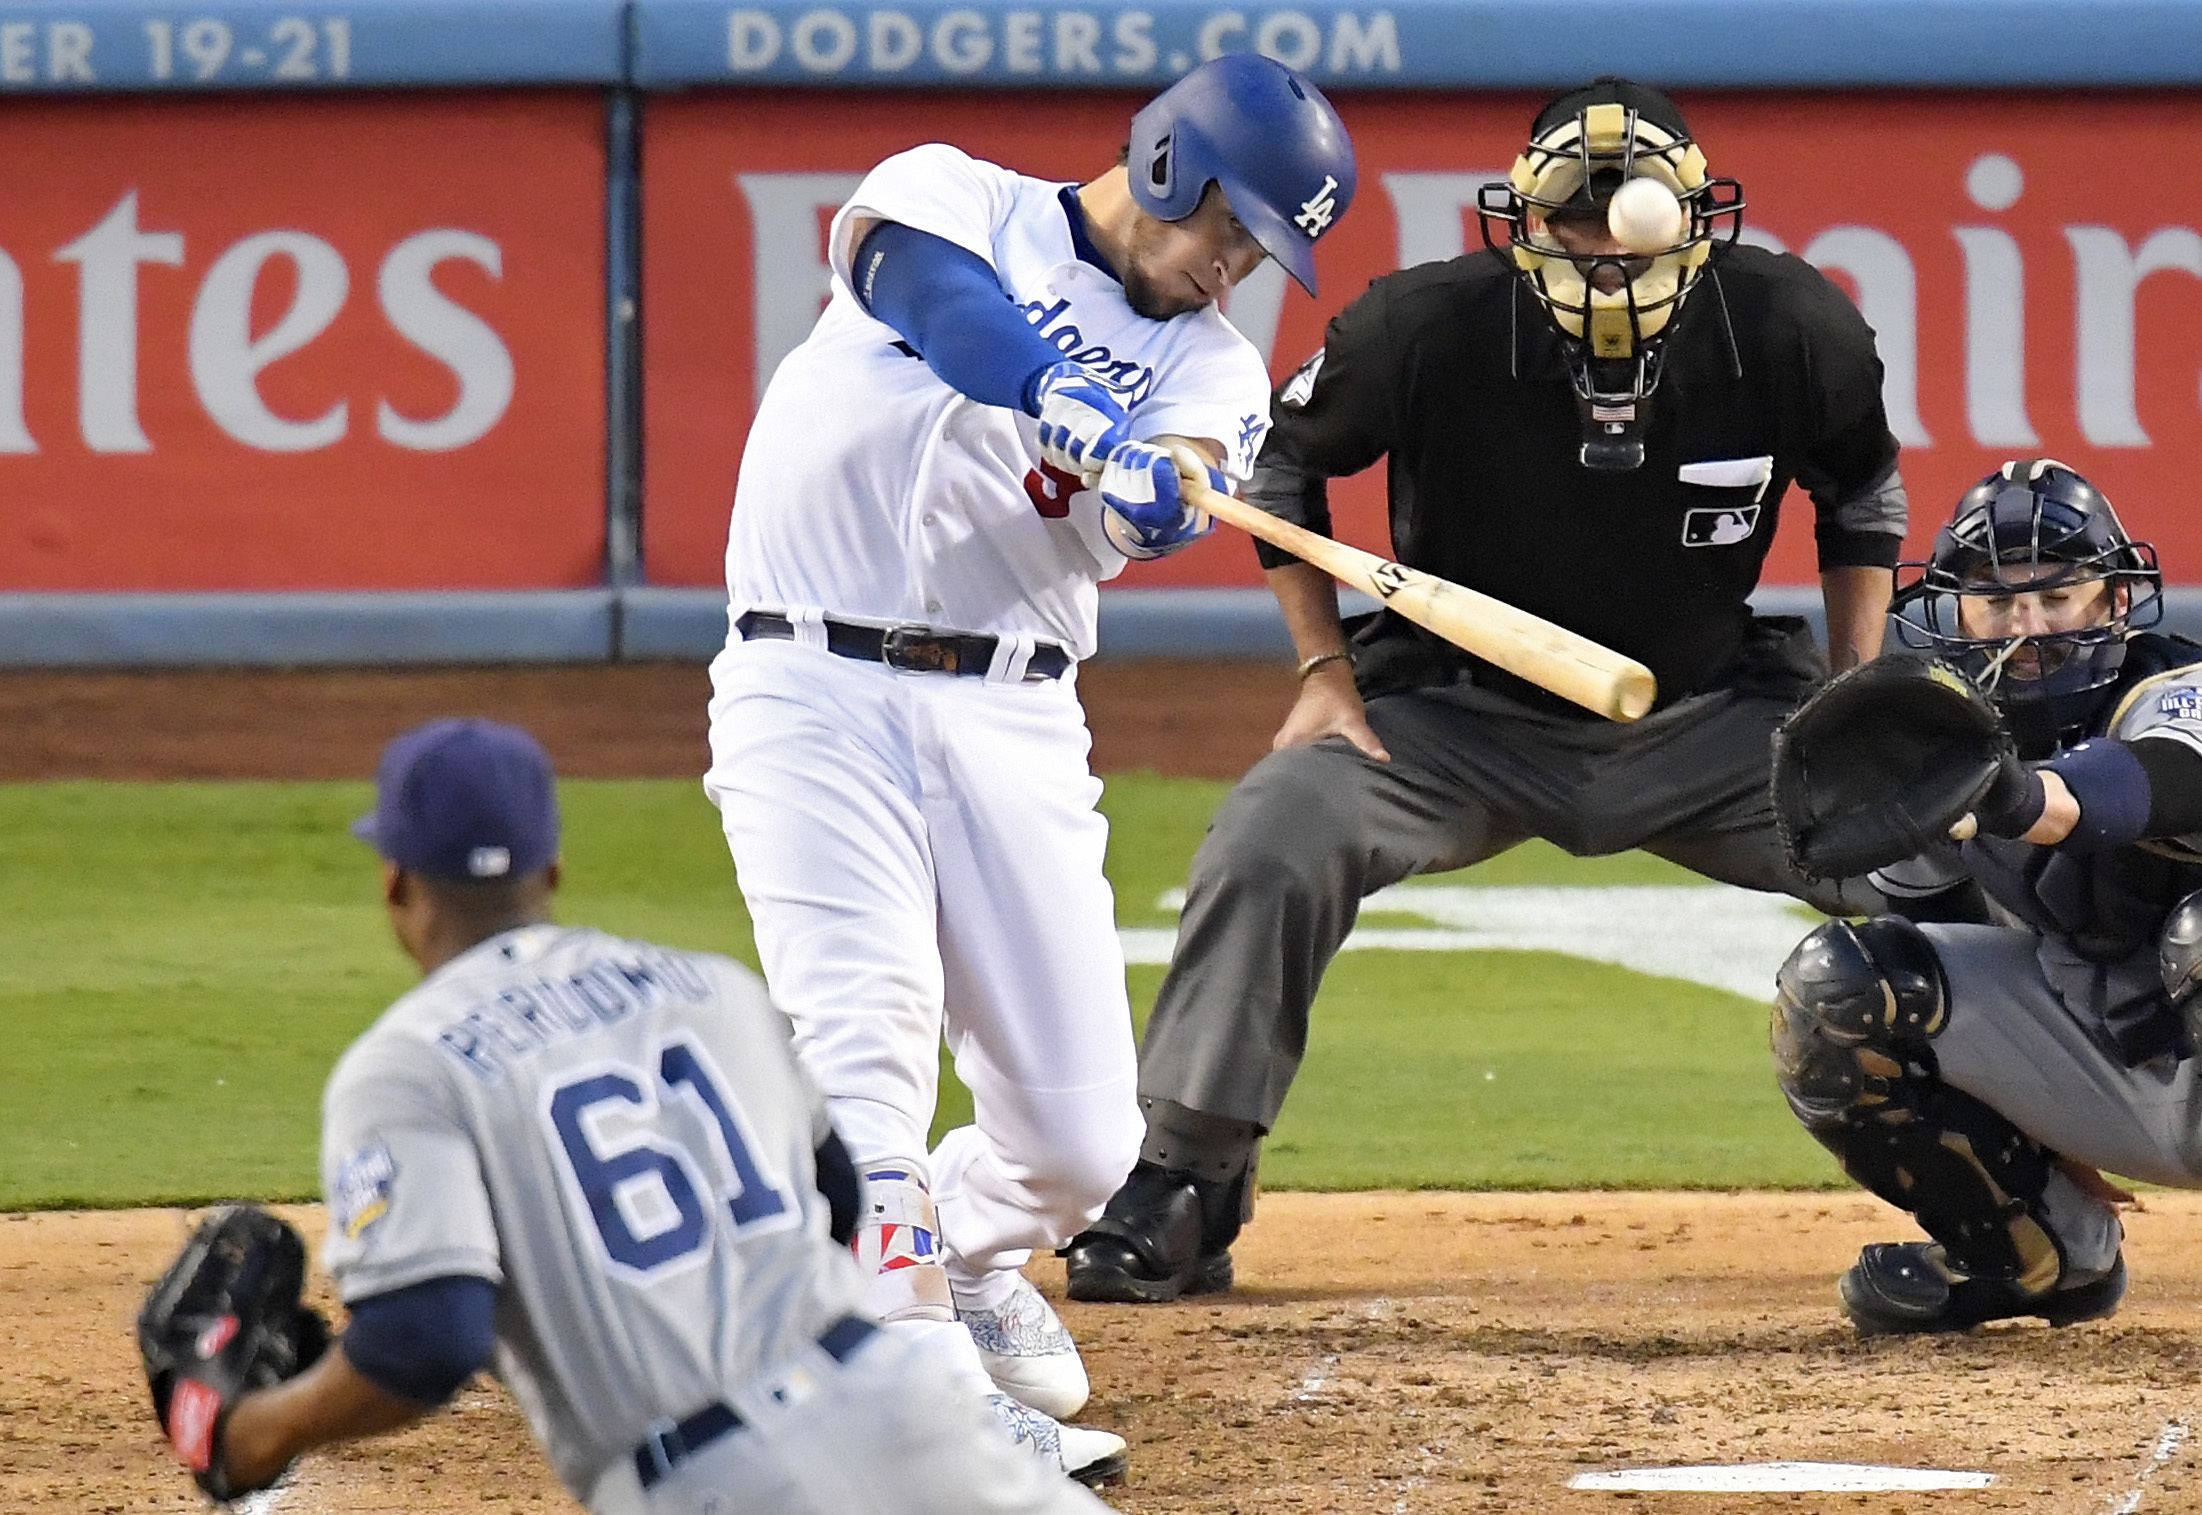 Los Angeles Dodgers' Yasmani Grandal, second from left, hits a three-run home run as San Diego Padres relief pitcher Luis Perdomo, left, and catcher Derek Norris, right, watch along with home plate umpire John Hirschbeck during the fourth inning of a base